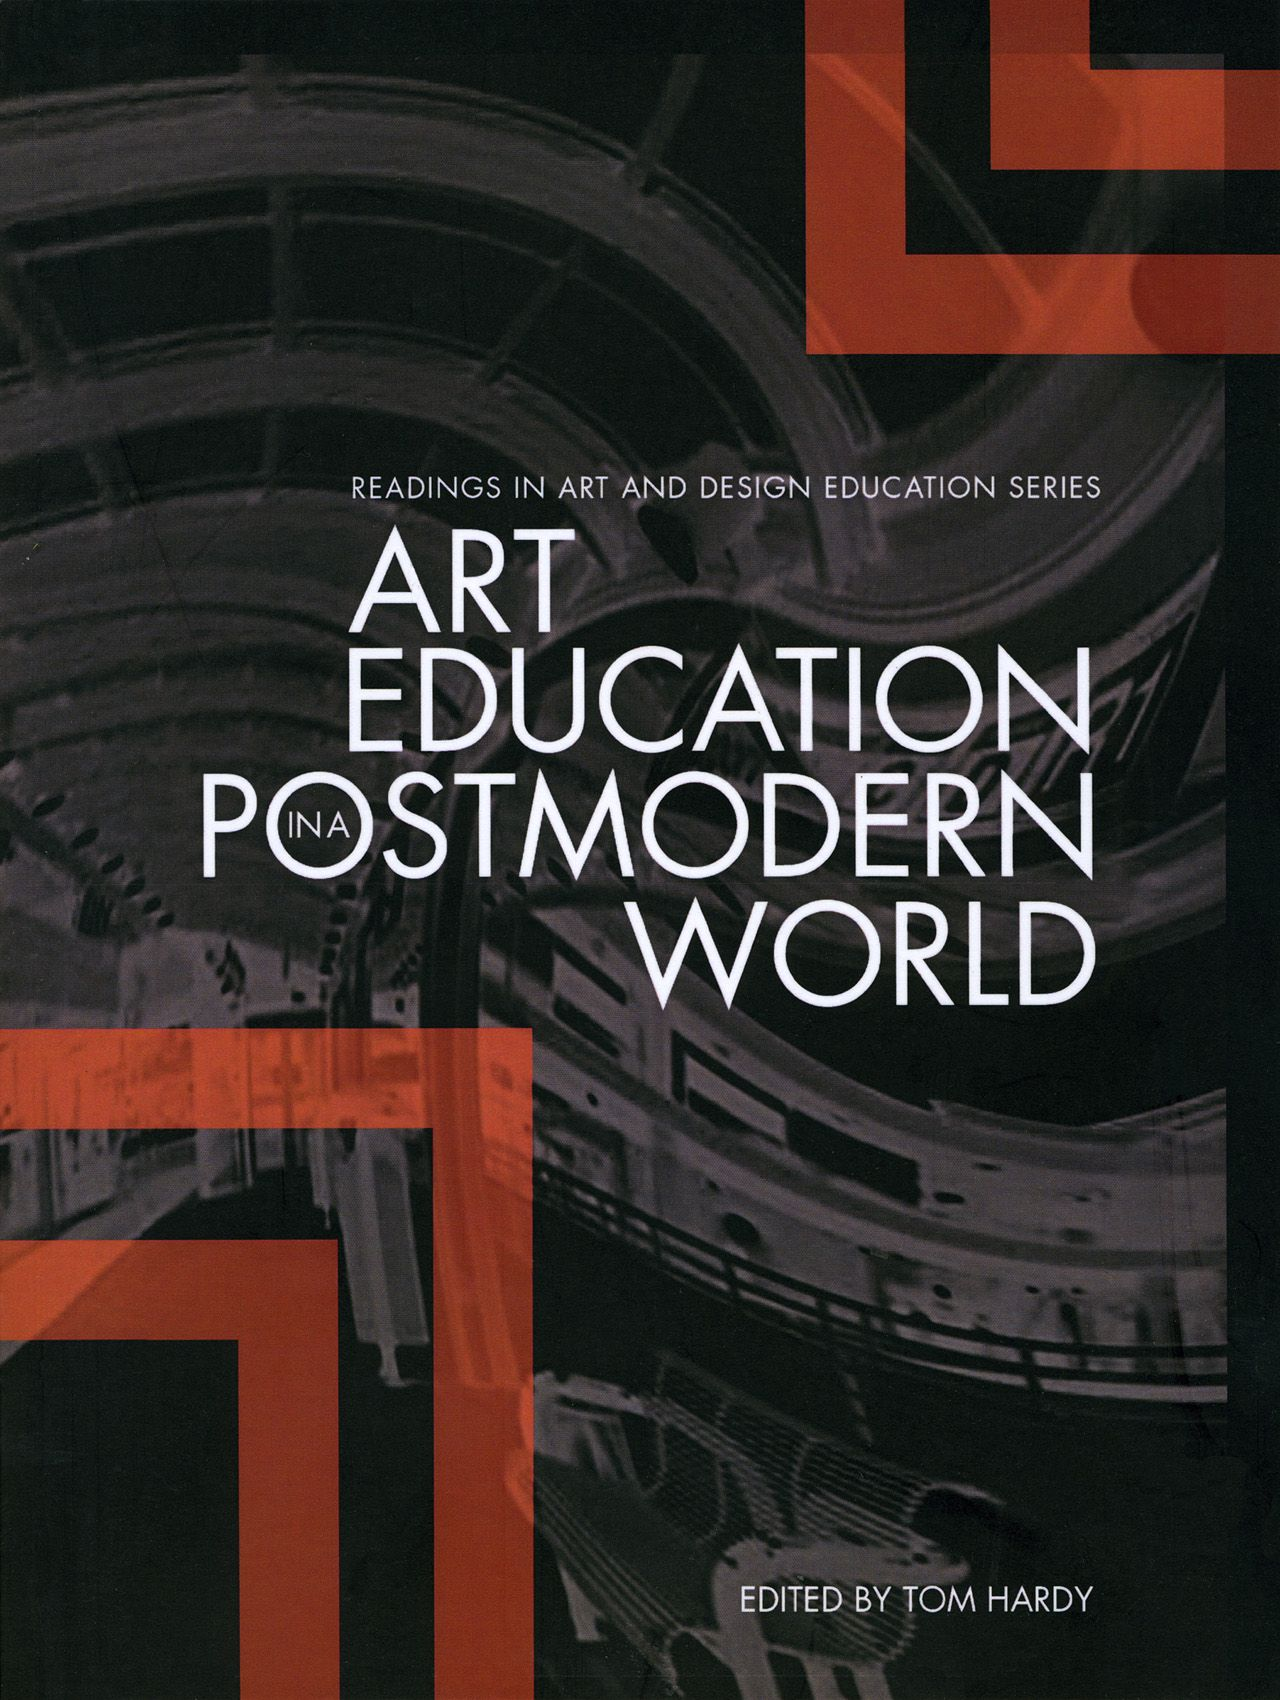 Art Education In A Postmodern World Collected Essays Hardy Art Education In A Postmodern World Collected Essays